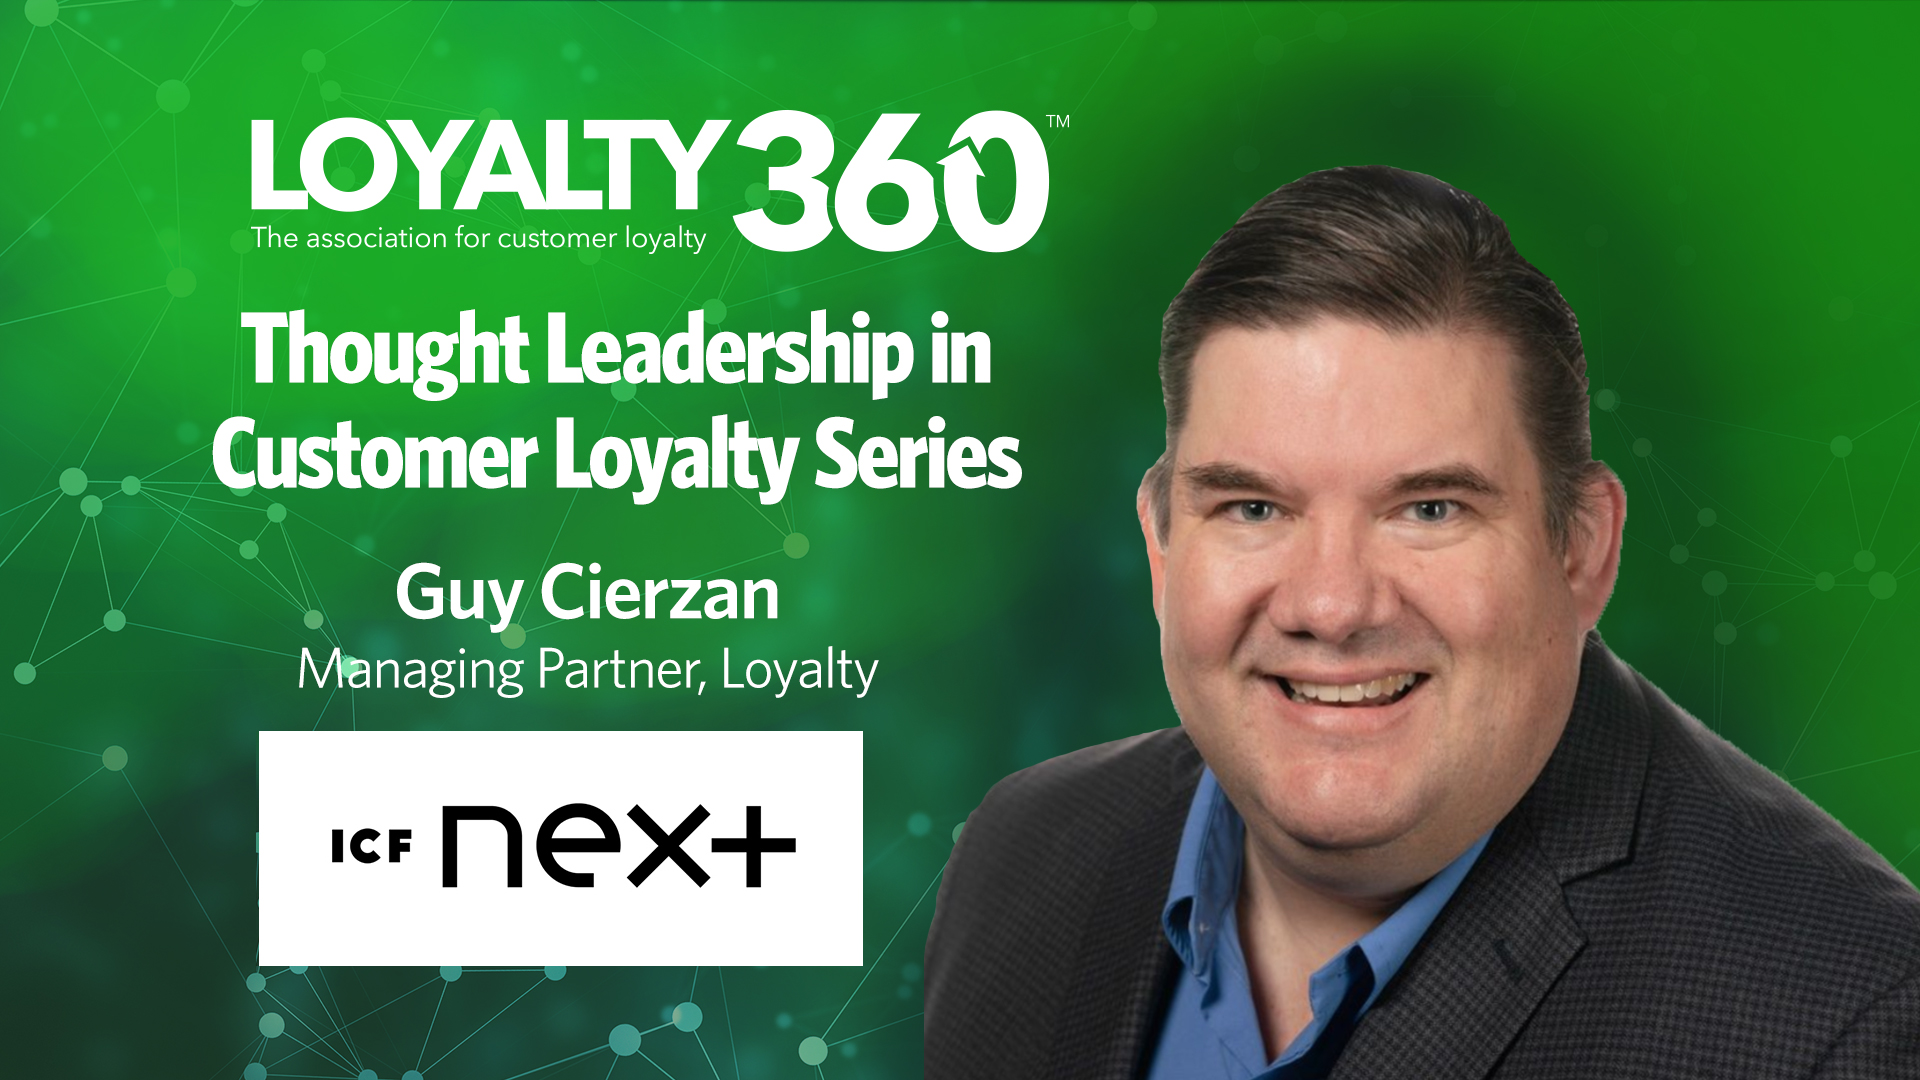 Loyalty360 Thought Leadership Series | Guy Cierzan, ICF Next